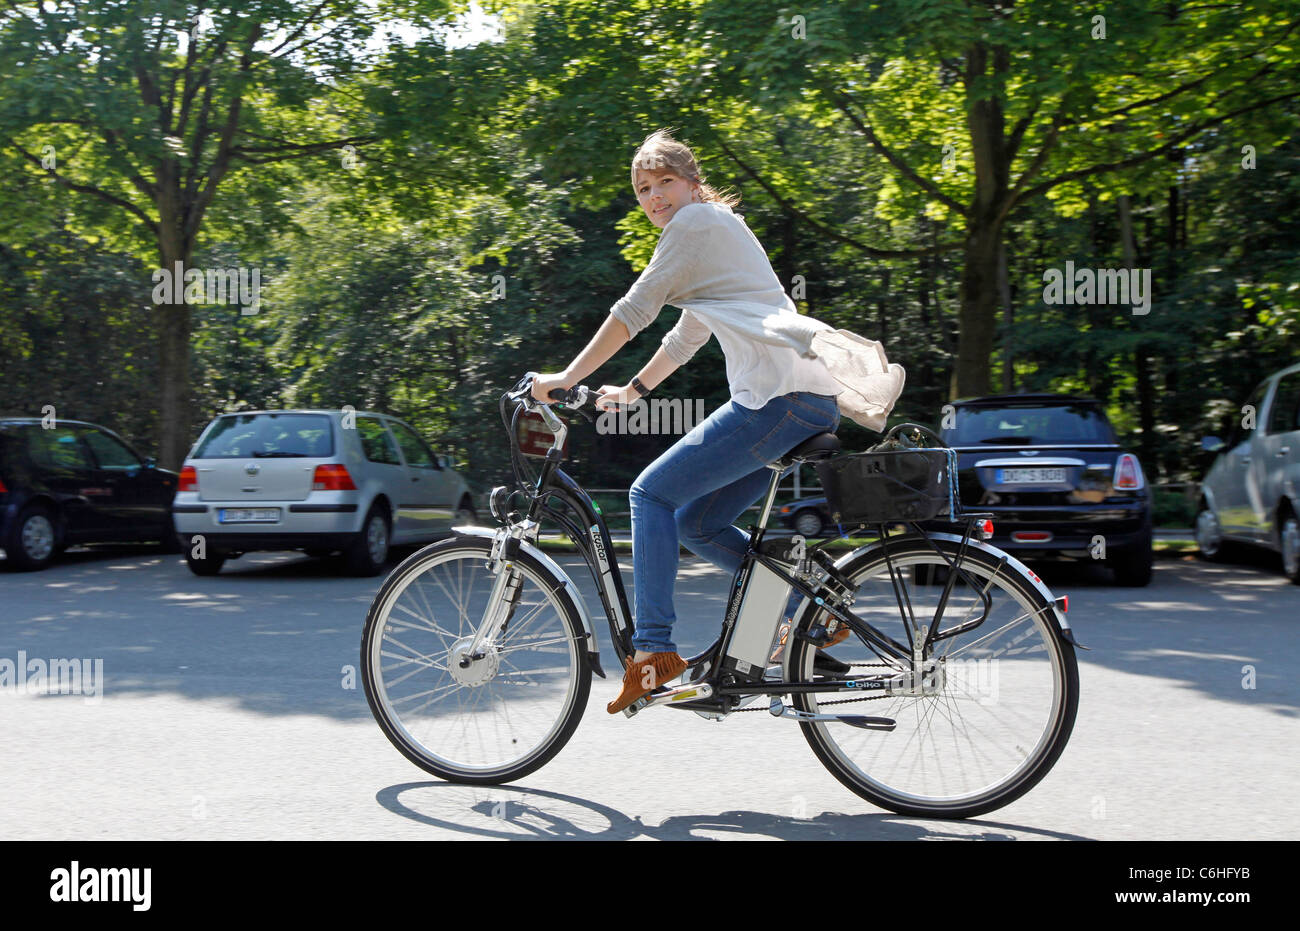 Girl riding on electric bicycle, pedelec, ebike, e-bike, Dortmund, Germany Stock Photo